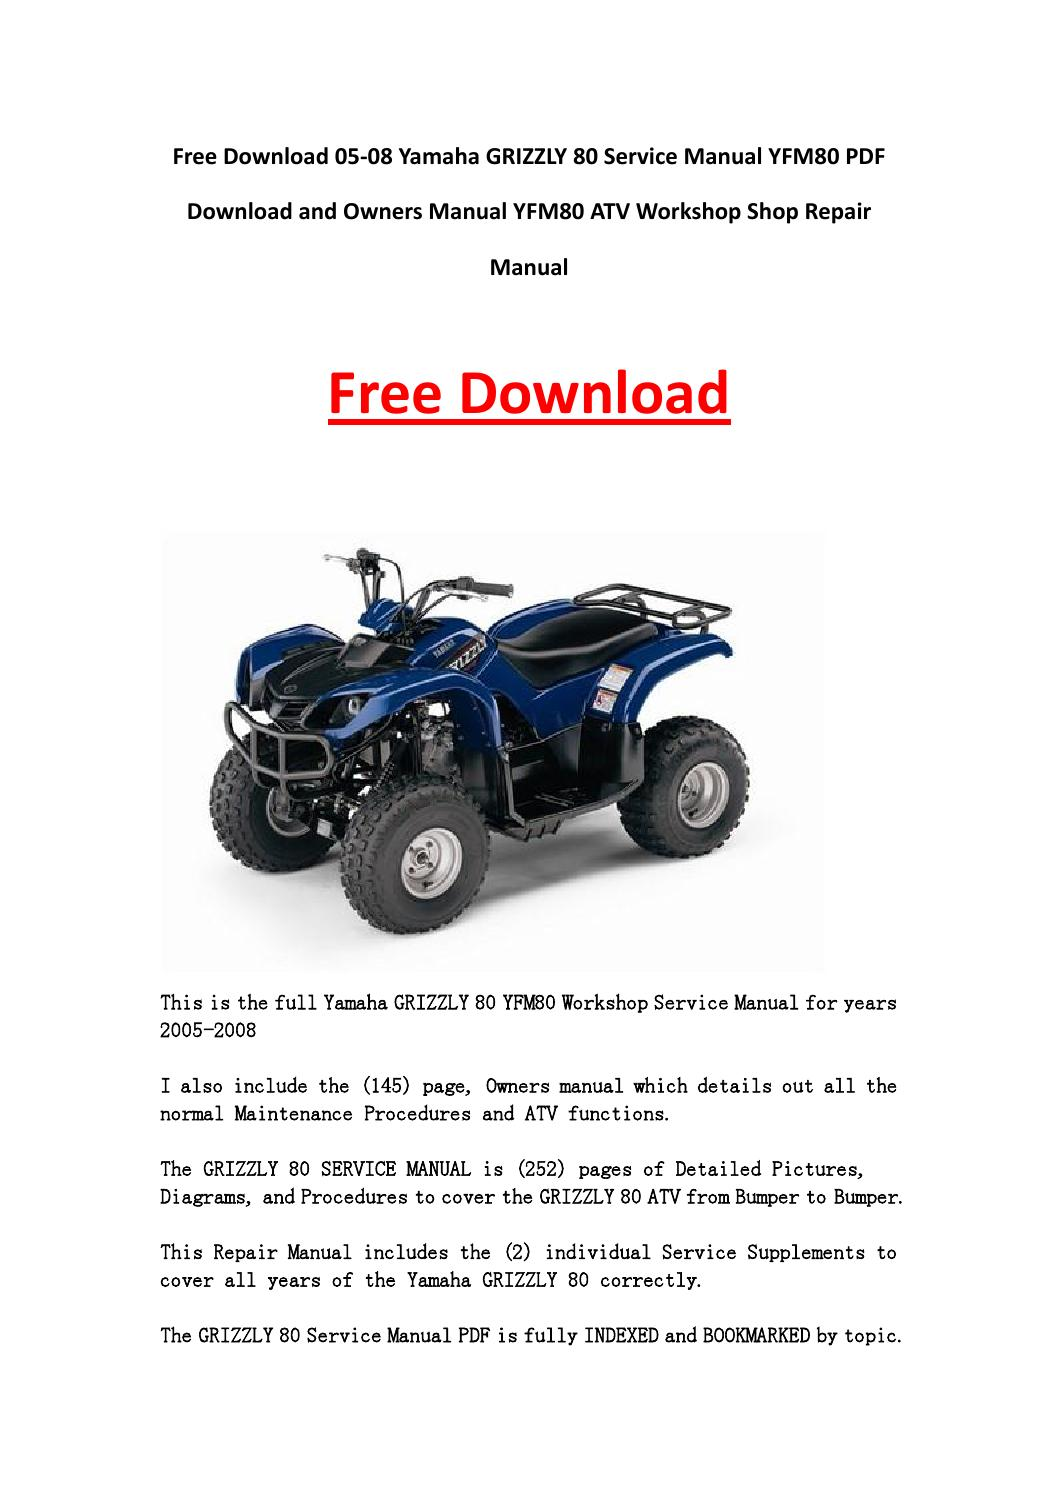 05 08 yamaha grizzly 80 service manual yfm80 pdf download for Yamaha grizzly 80